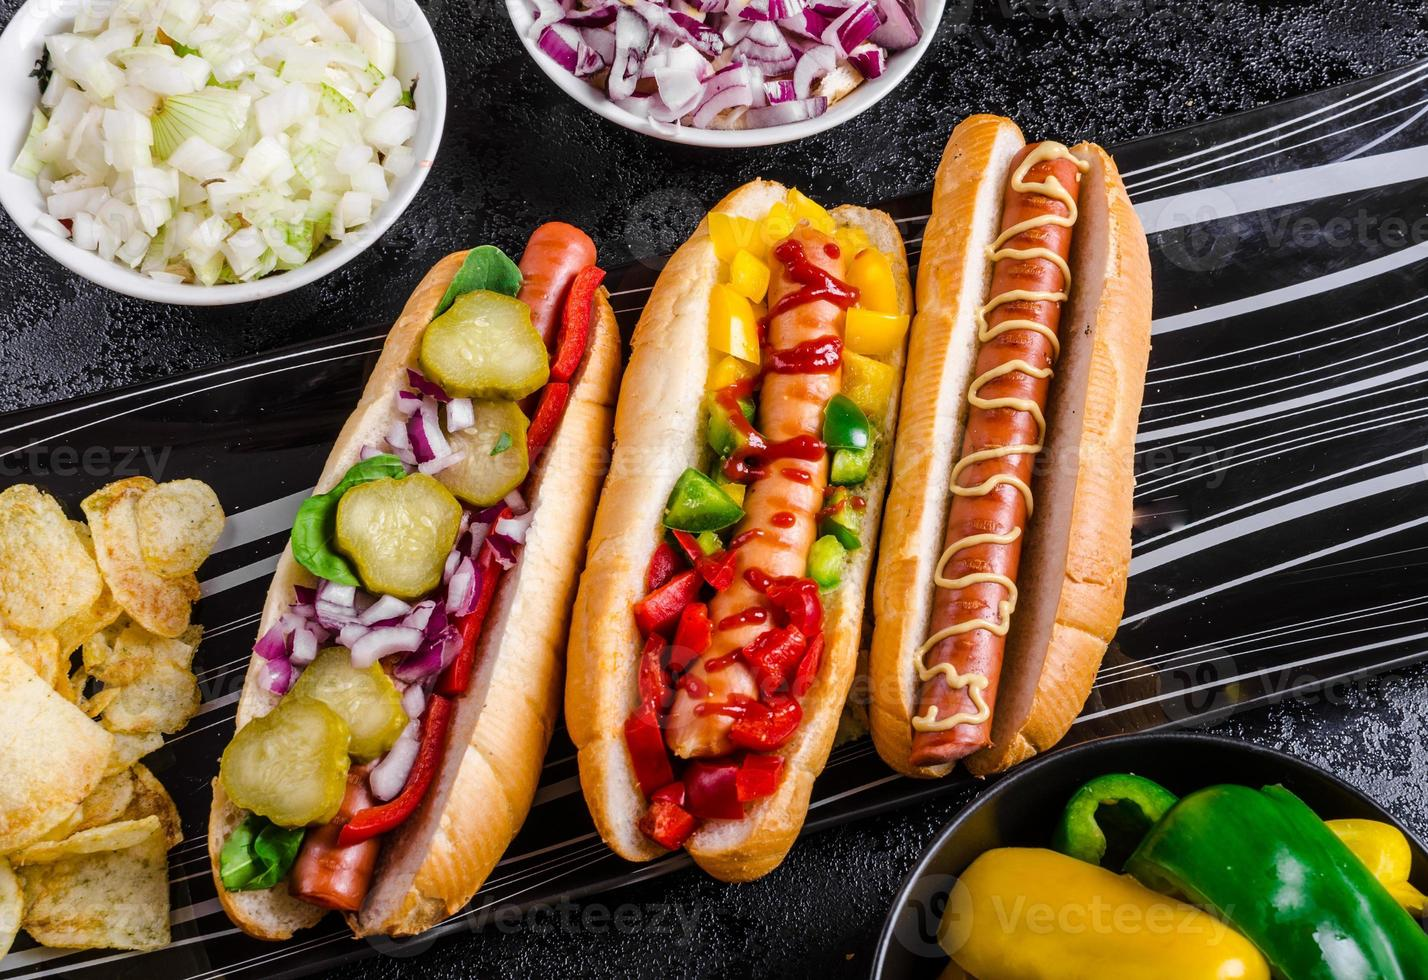 All beef dogs, variantion of hot dogs photo